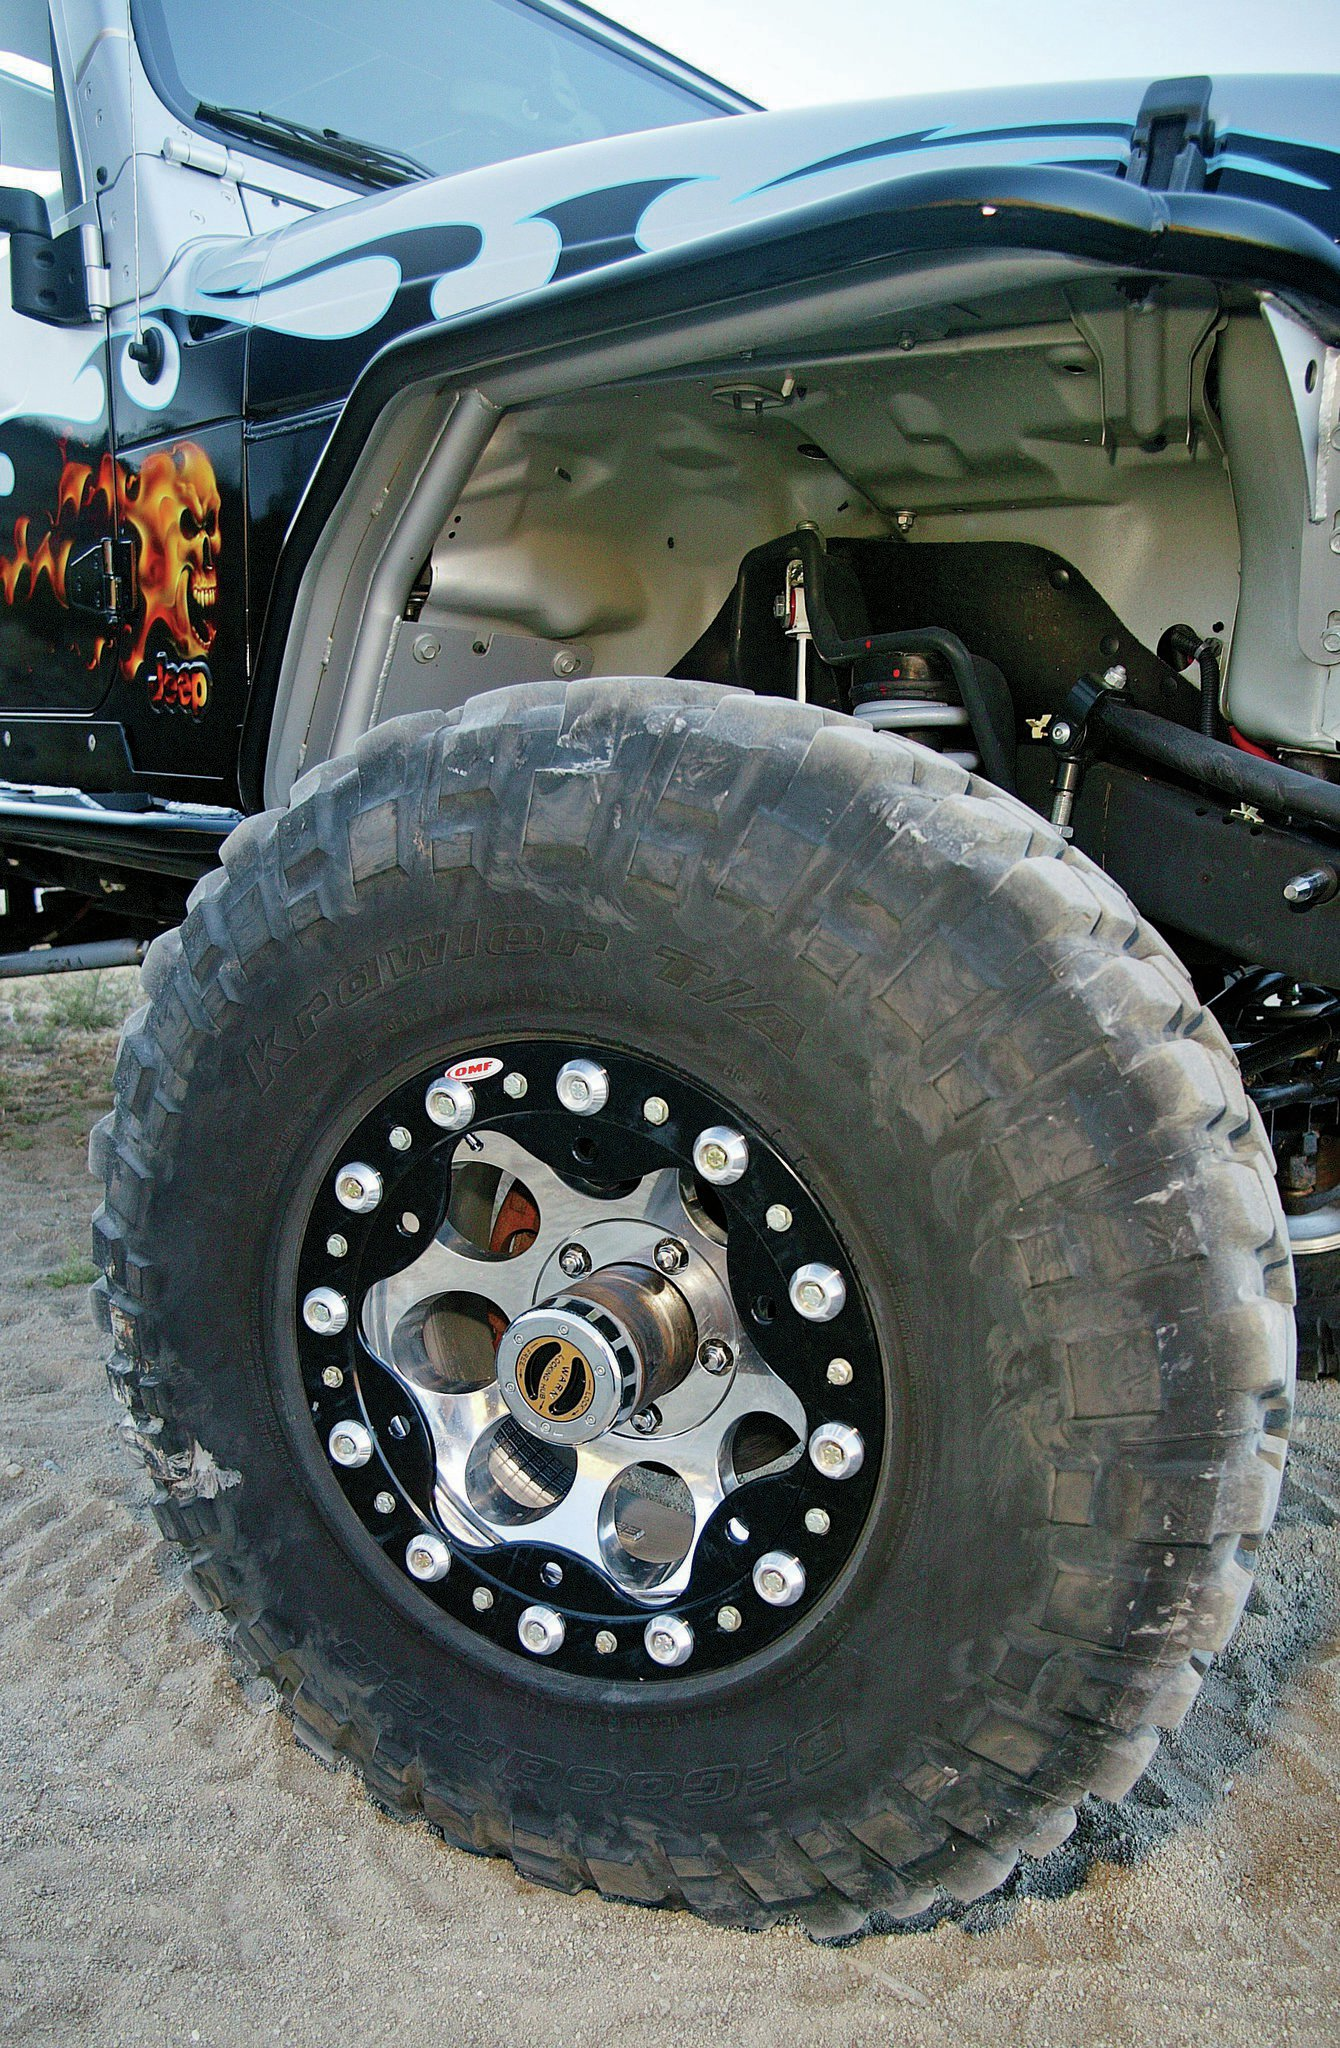 If you already have aluminum wheels, OMF can convert them to beadlocks by machining the outer lip off of the wheels and welding on a new mounting surface that is threaded to accept their beadlock ring.